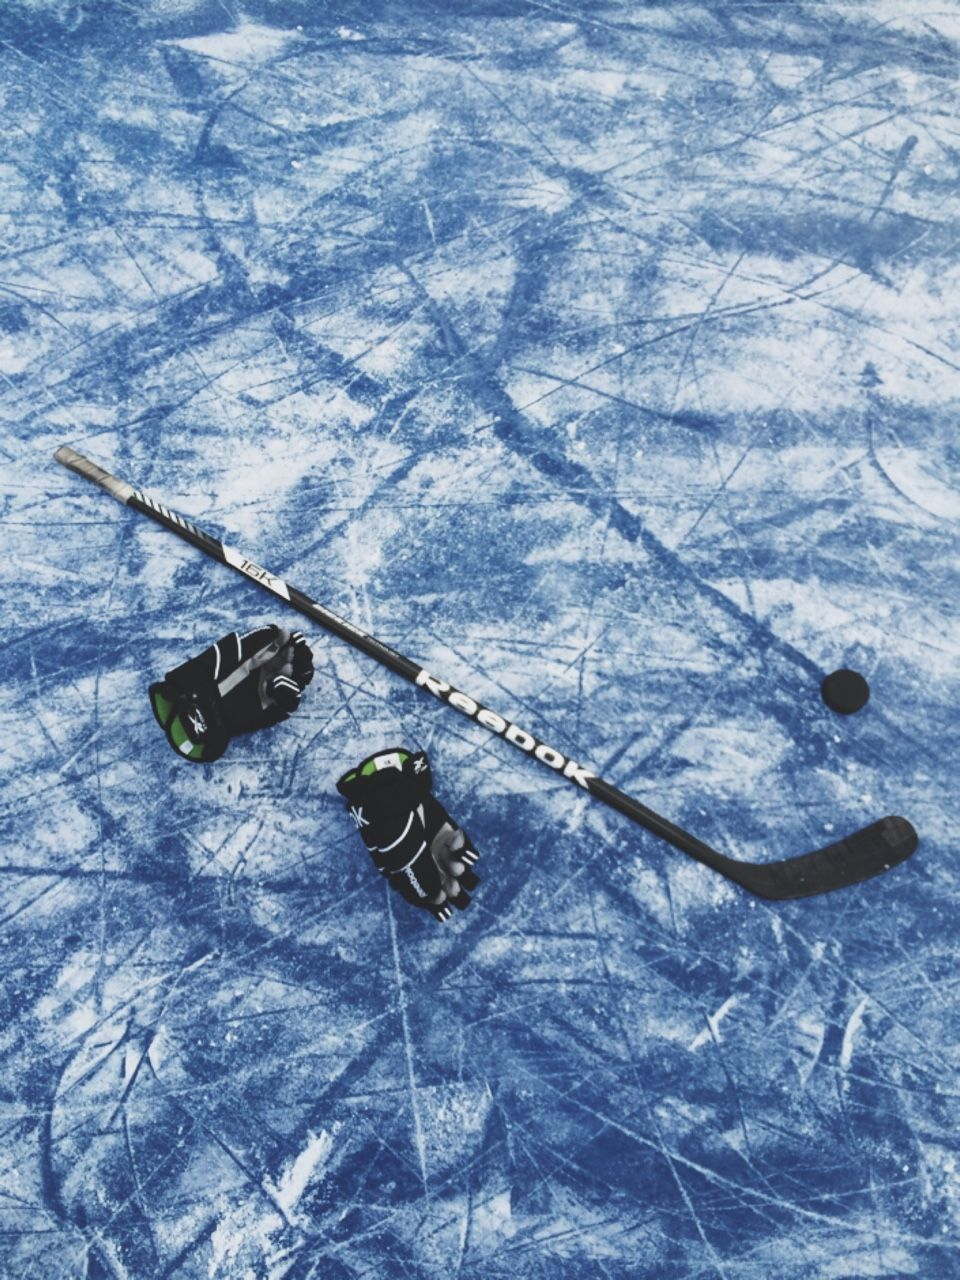 Every Day Is A Great Day For Hockey With Images Ice Hockey Hockey Girls Hockey